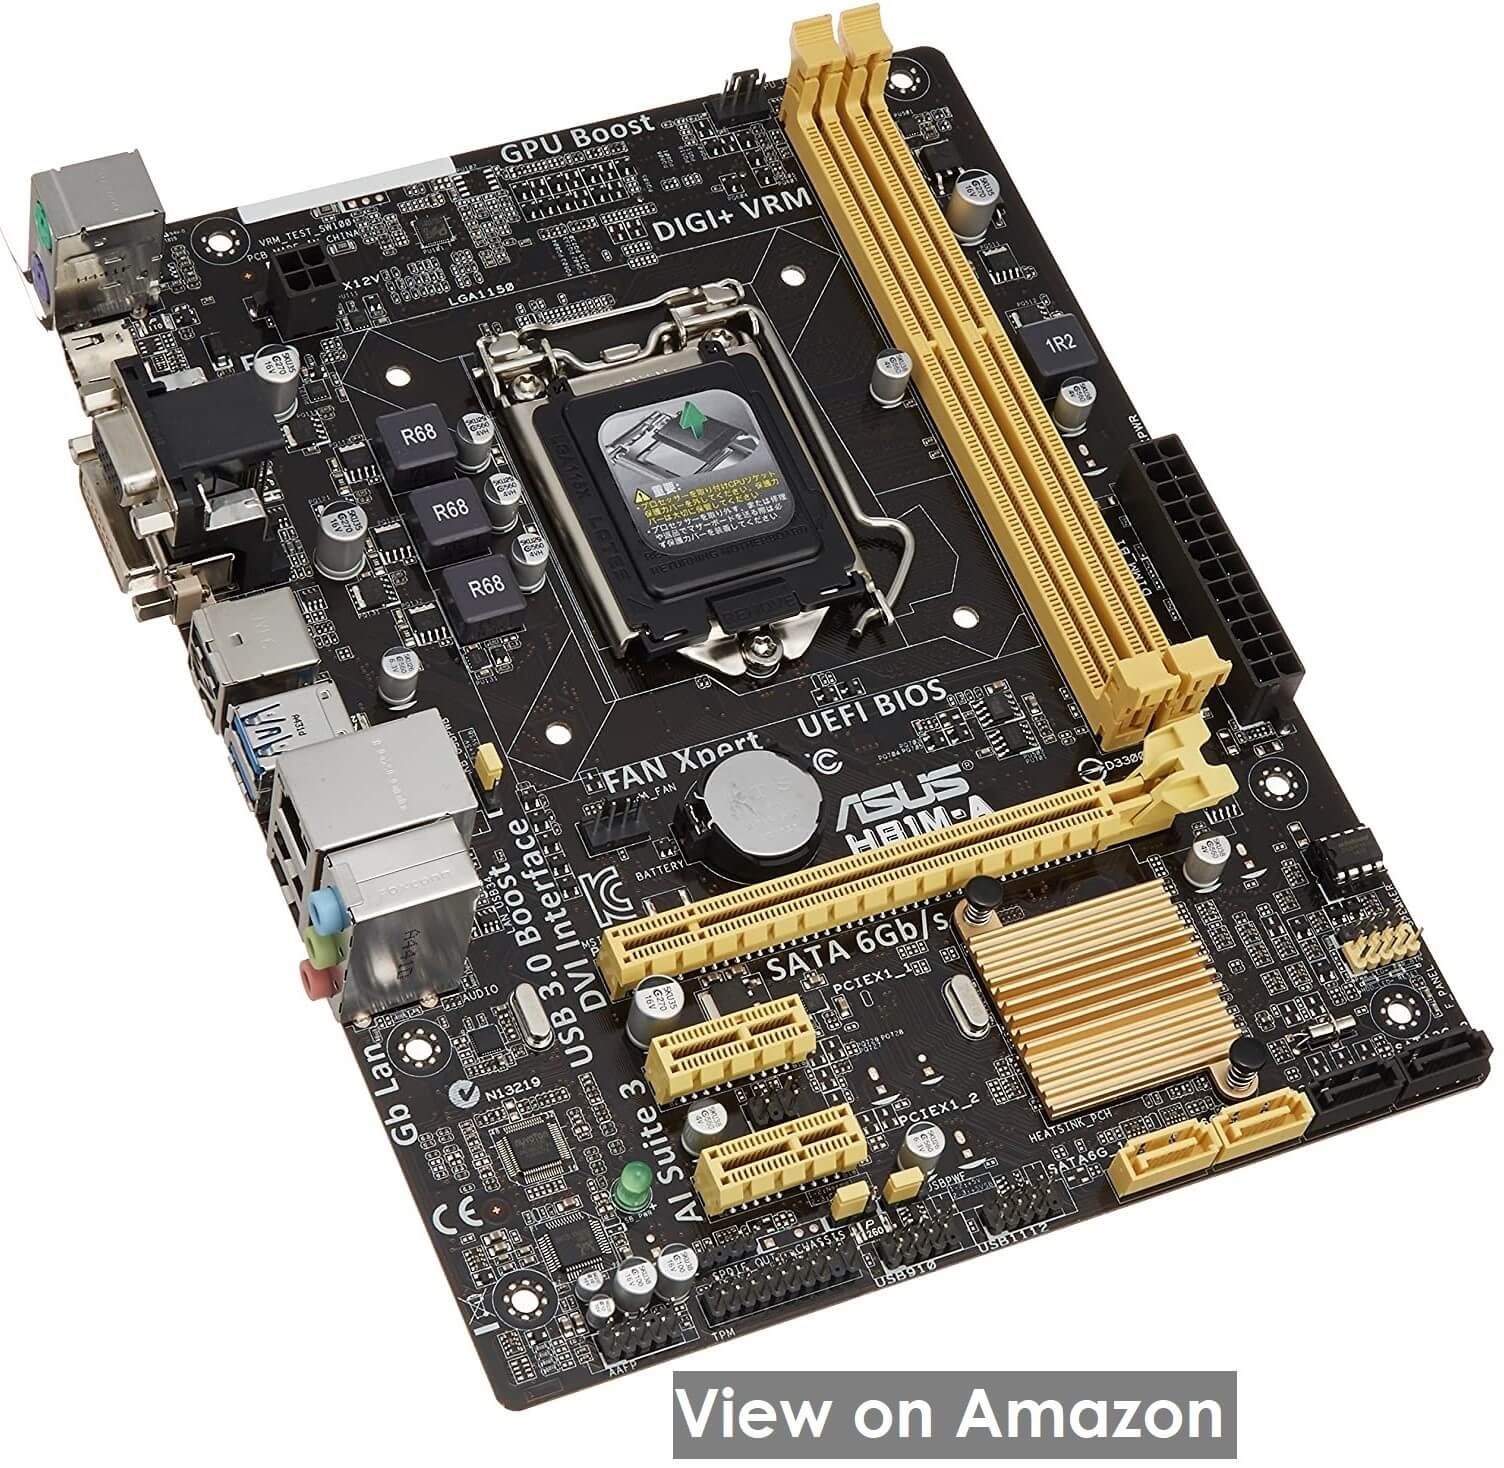 ASUS H81M-A- Best Looking Motherboard for i7-4790k